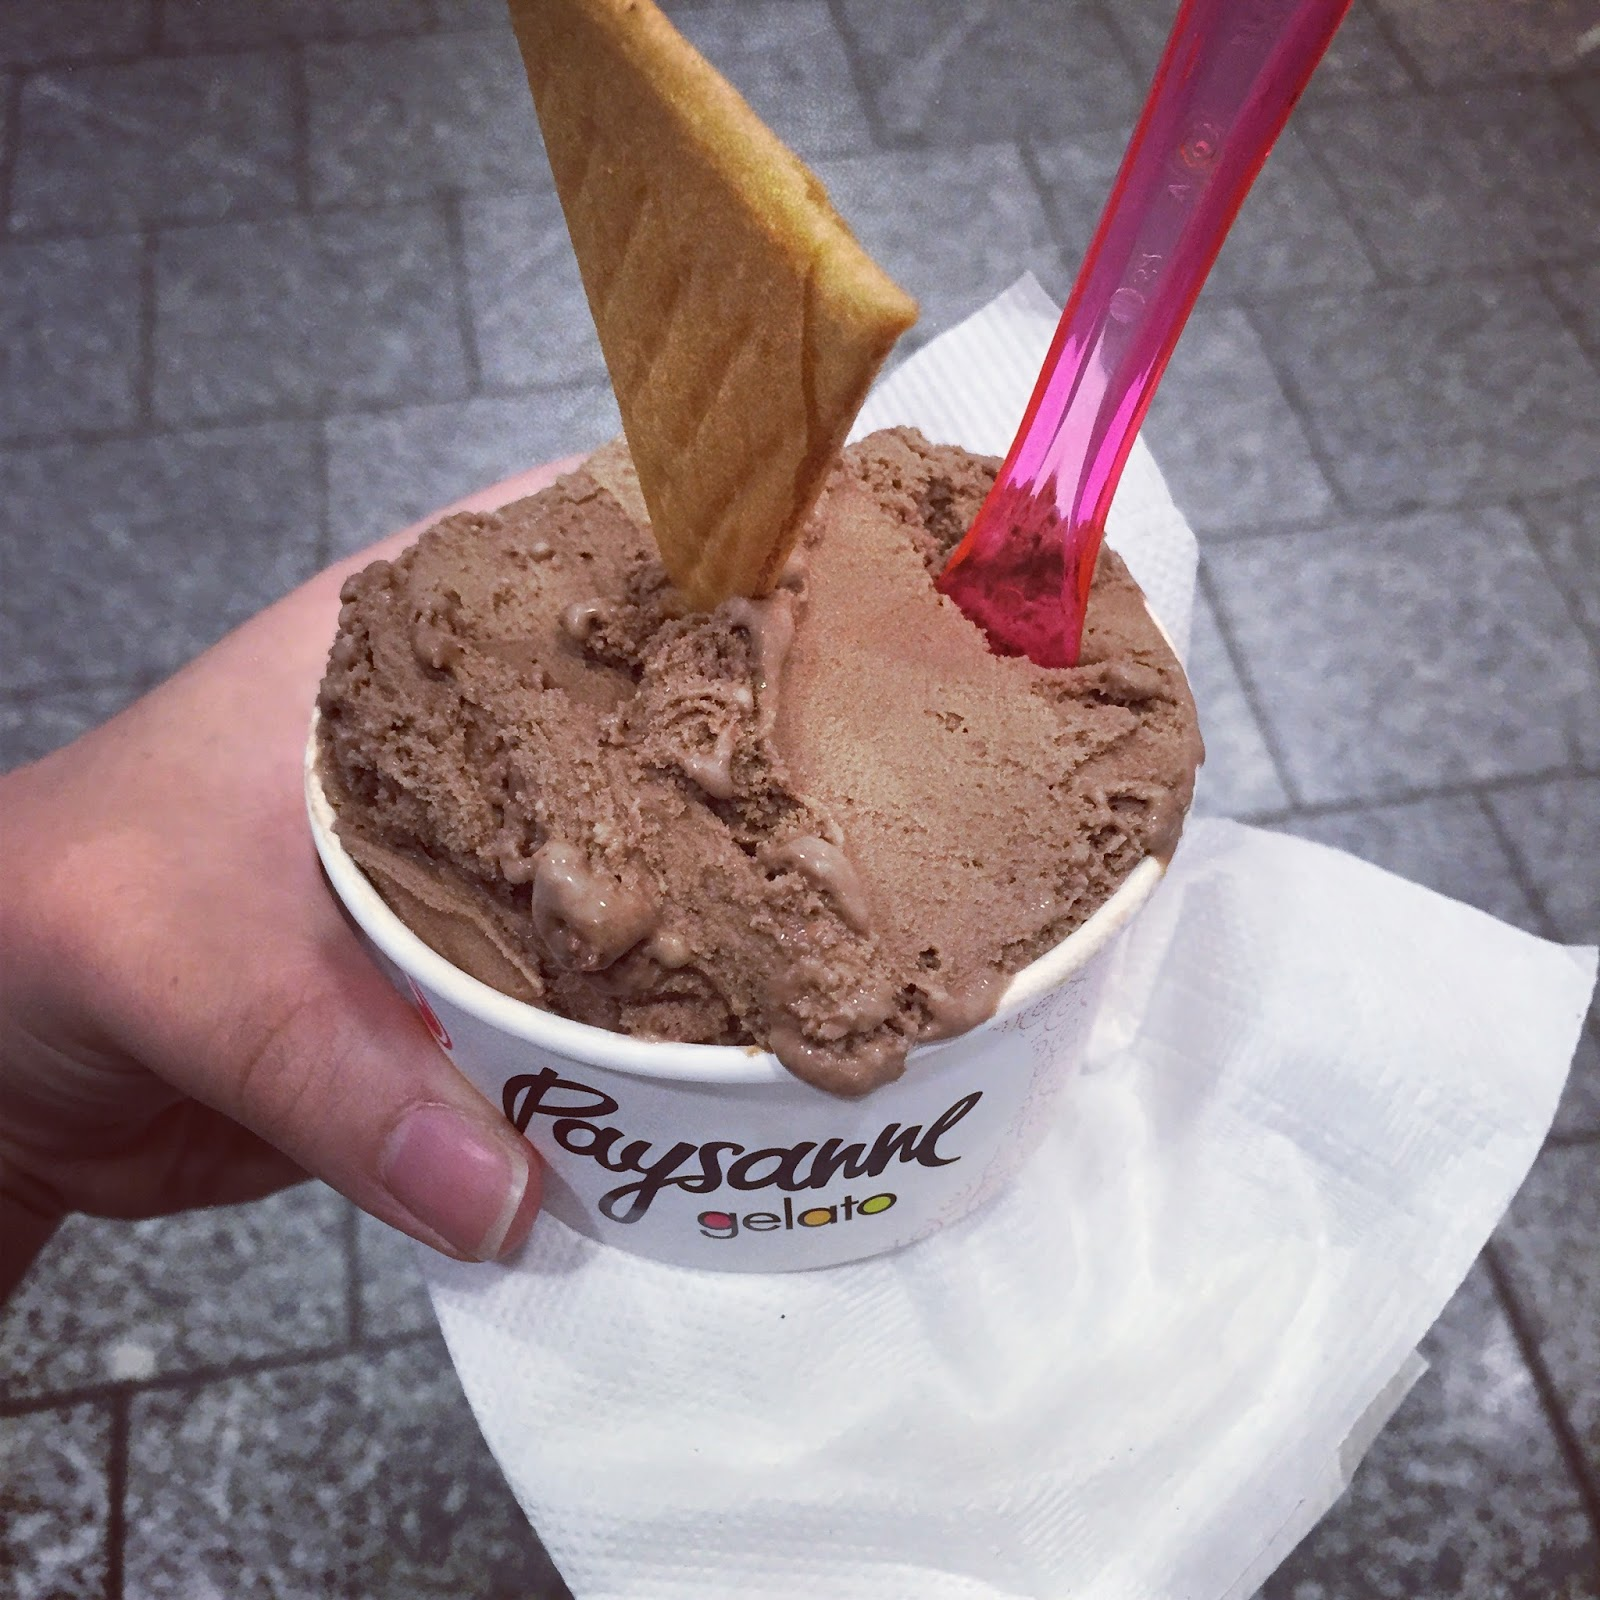 paysanne gelato is one of the best gelato places in montreal